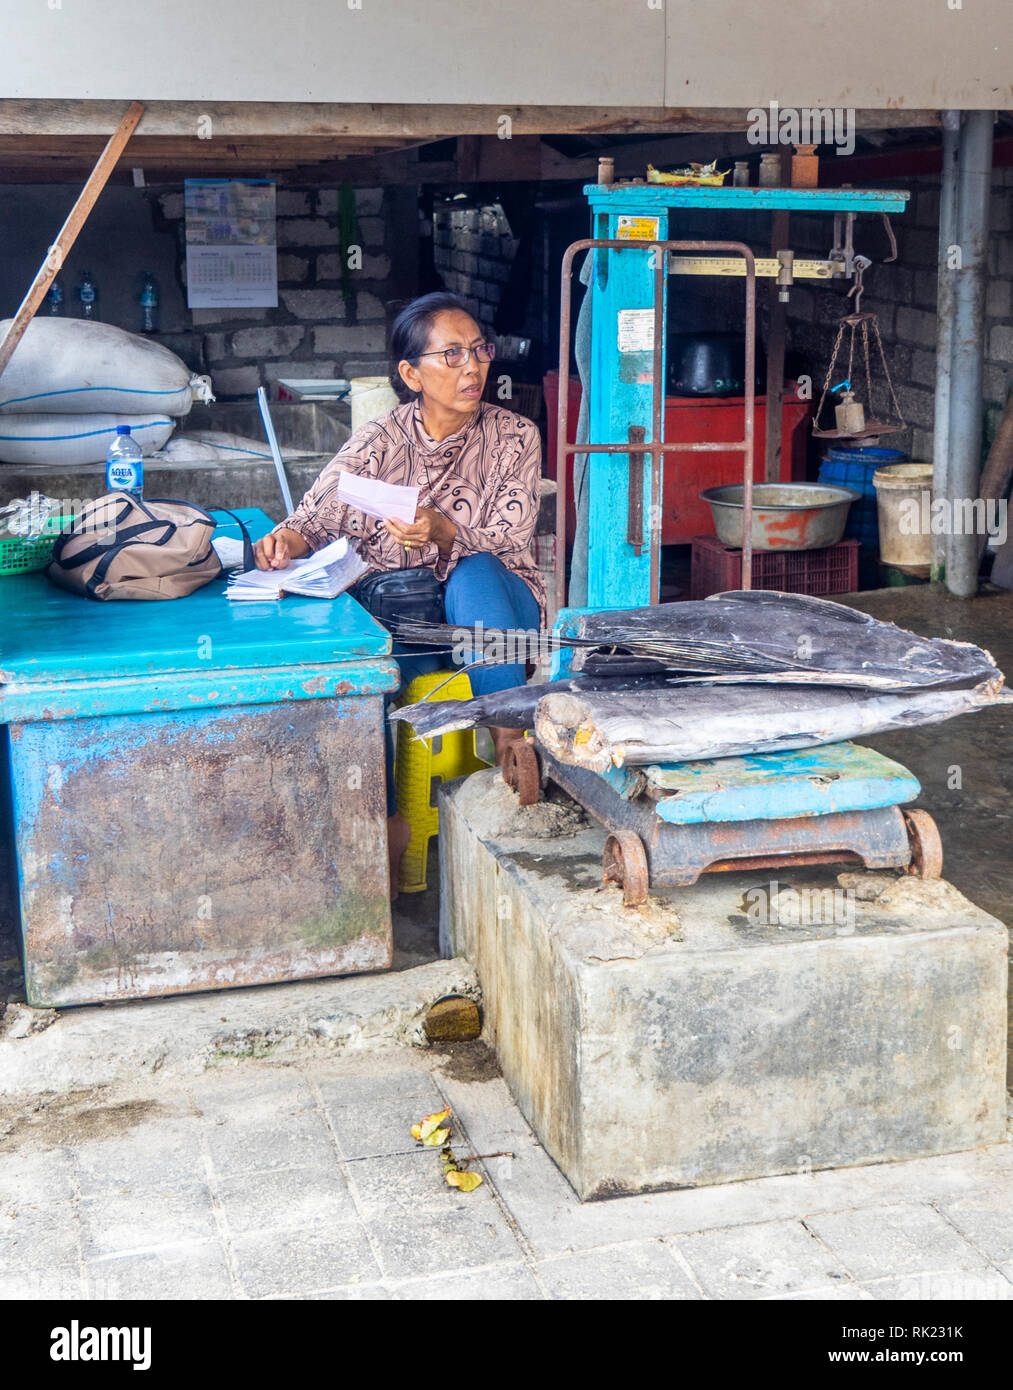 Woman weighing  a large piece of dried fish on scales in Jimbaran, Bali Indonesia. - Stock Image